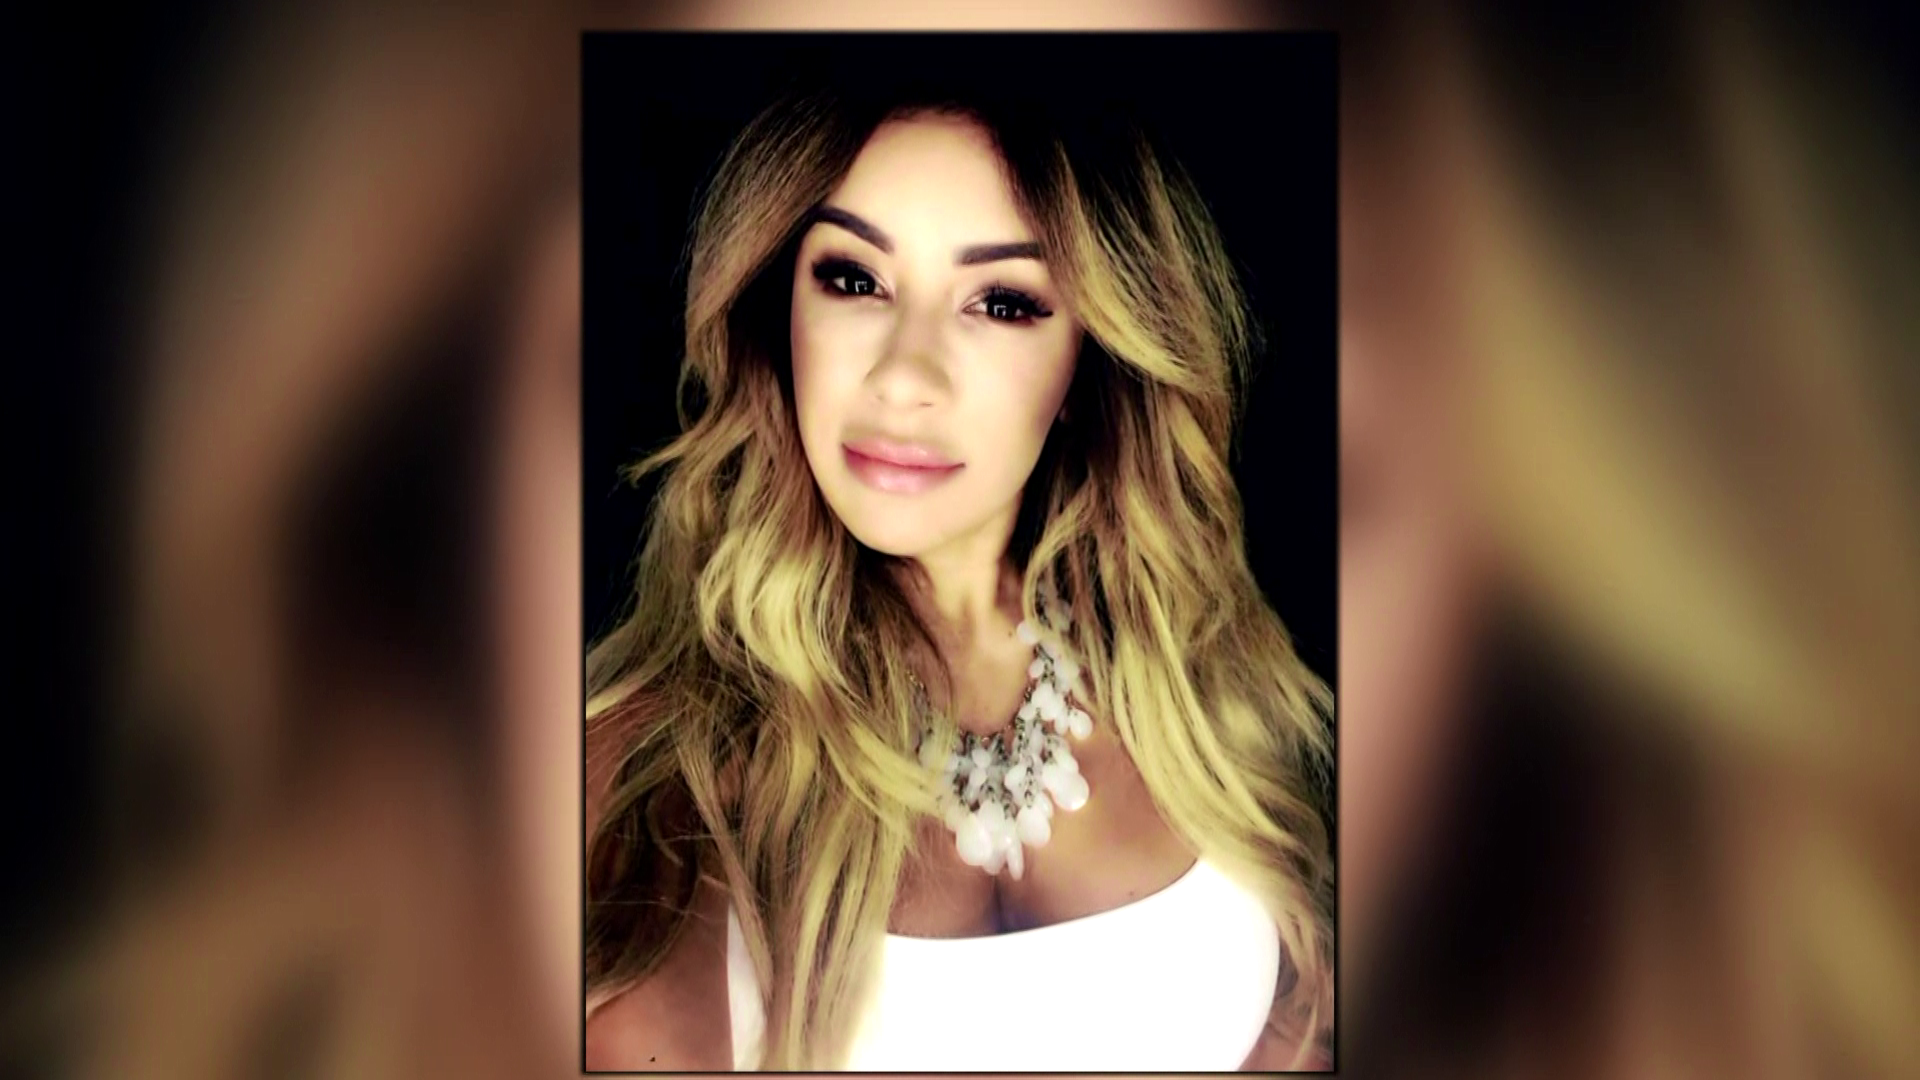 Laura Avila death: Fiancé of Dallas woman who died after plastic